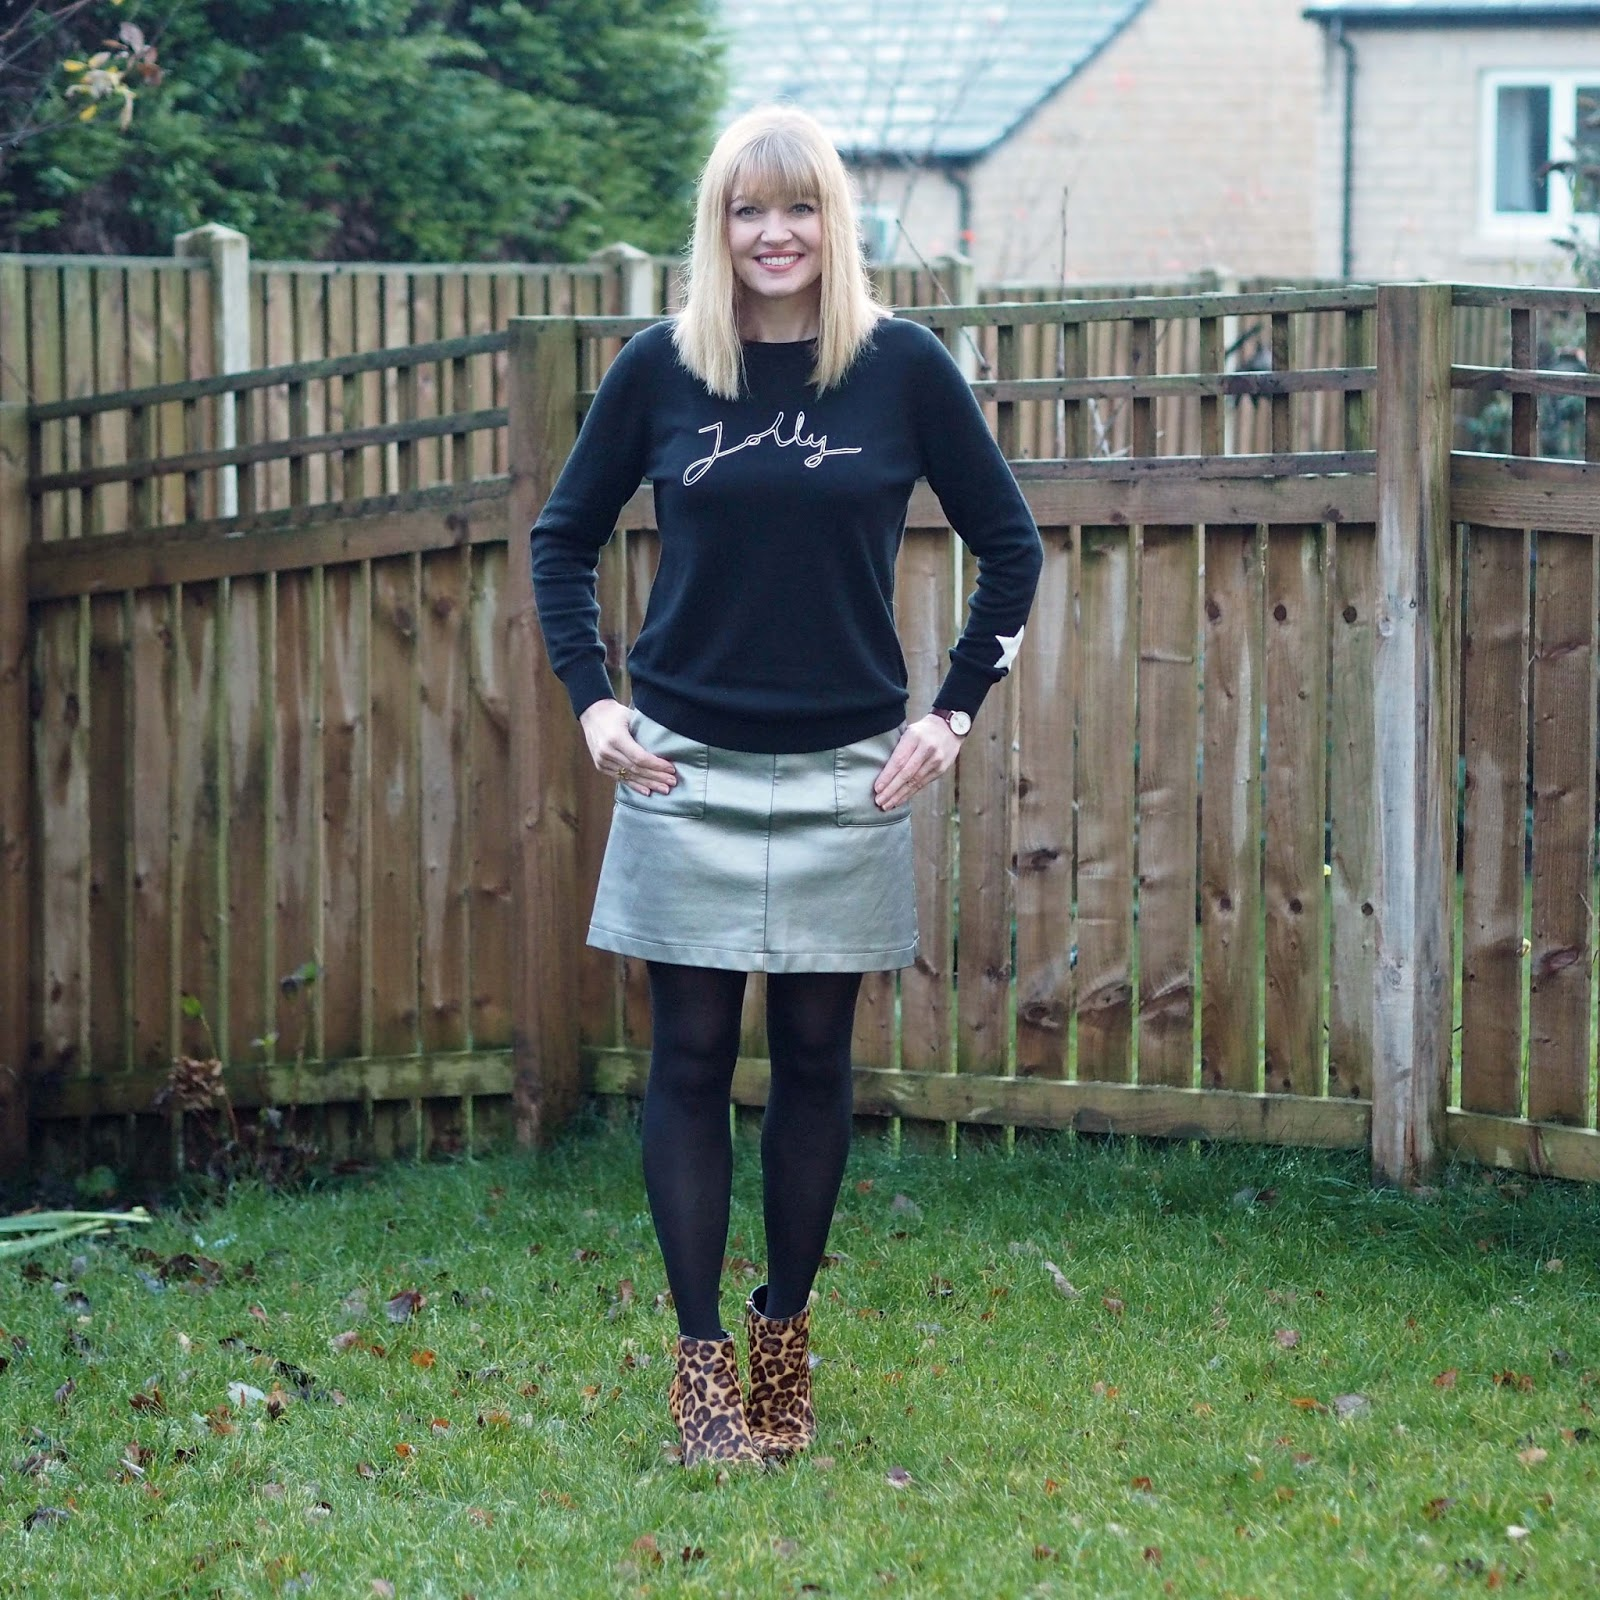 Stylish Christmas jumper with metallic leather look mini skirt, leopard print heeled boots over 40